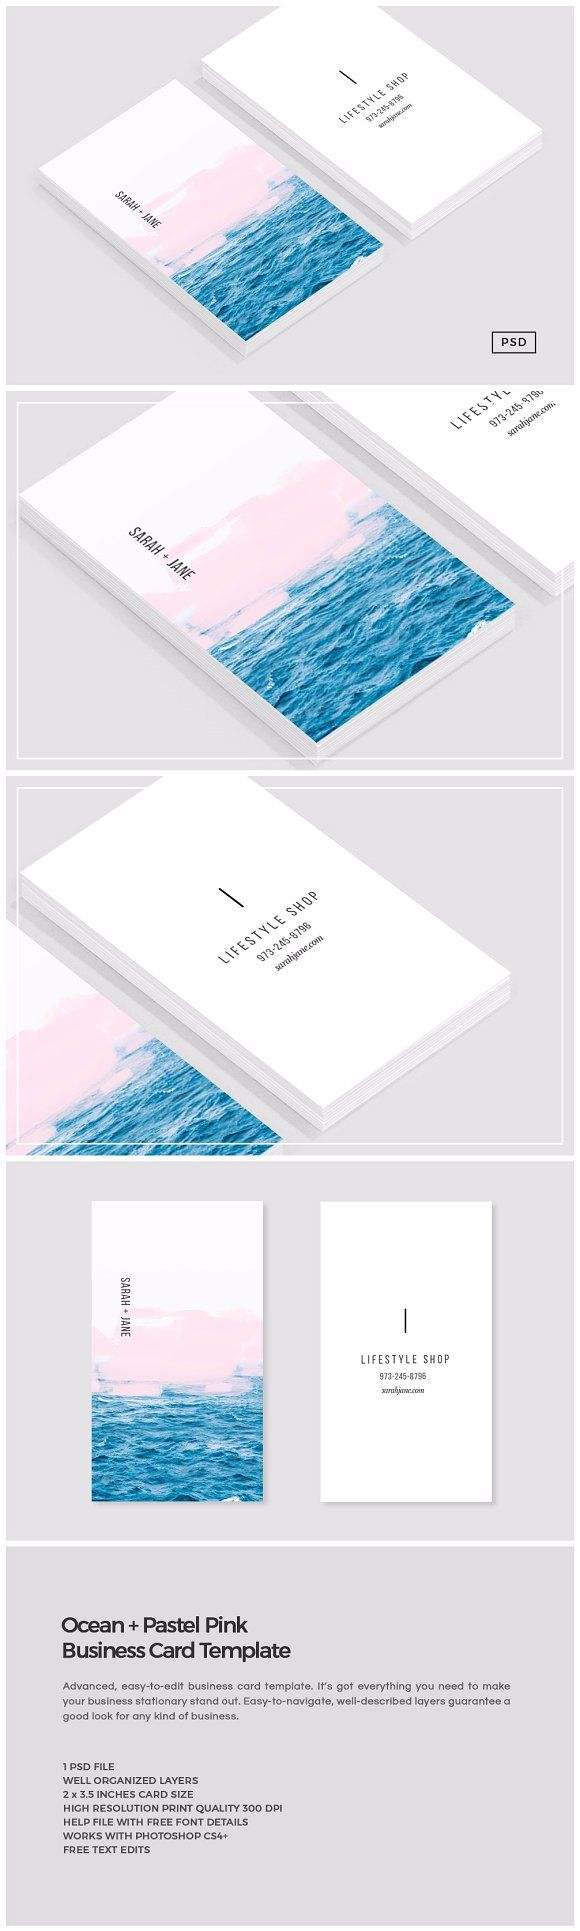 Best 25 business card templates ideas on pinterest business ocean pink business card template templates introducing our ocean pastel pink business card template perfect for use in your next project or by the design magicingreecefo Choice Image